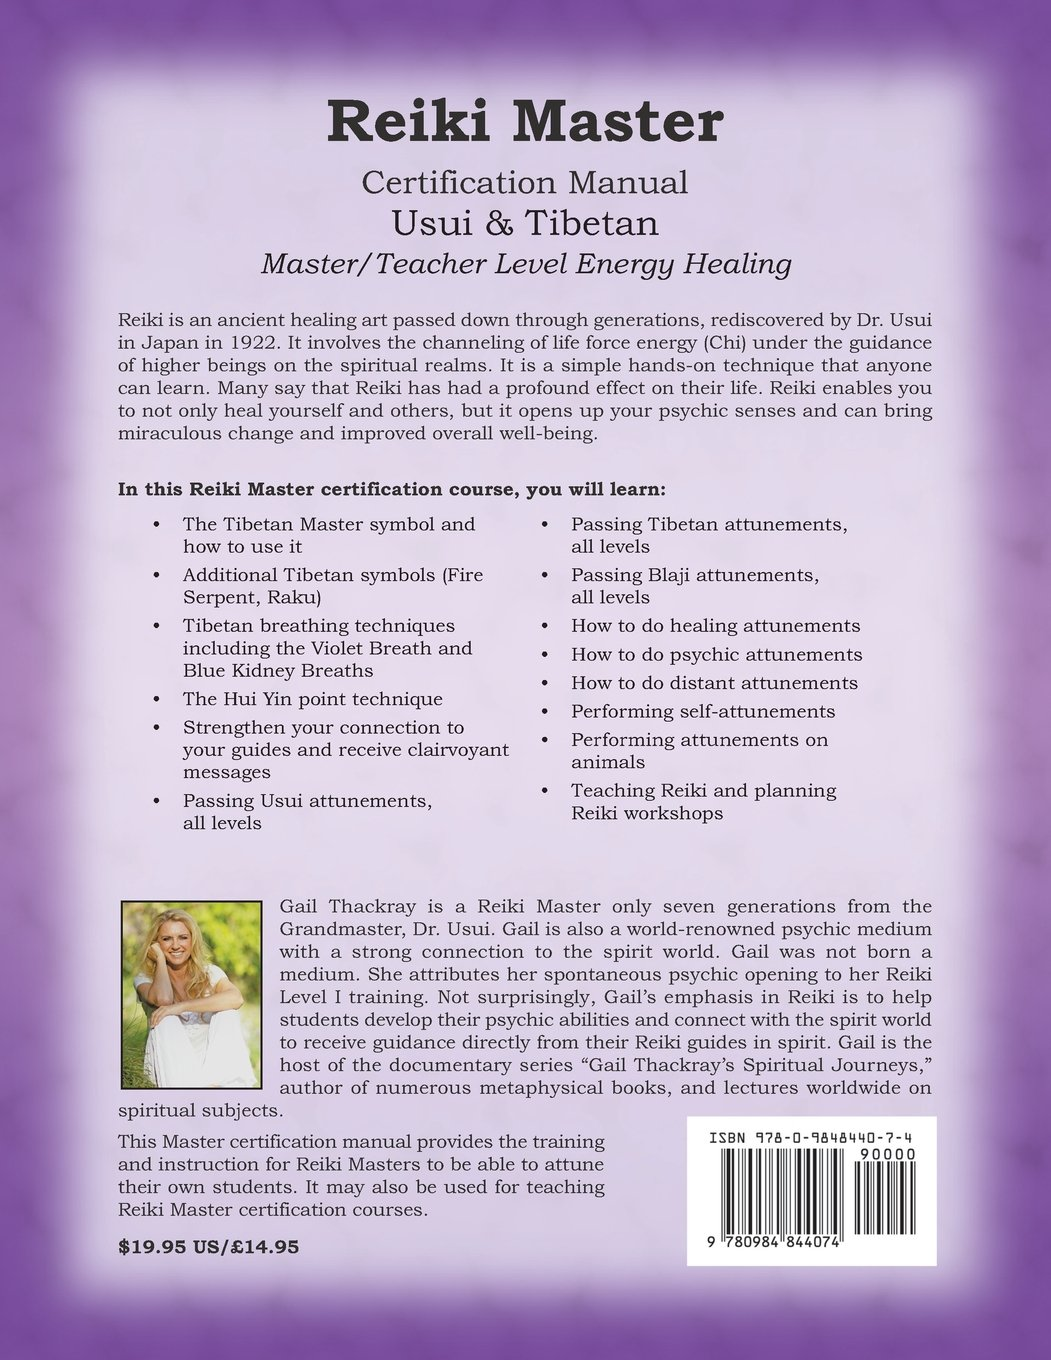 Reiki usui tibetan master certification manual gail thackray reiki usui tibetan master certification manual gail thackray 9780984844074 amazon books 1betcityfo Gallery